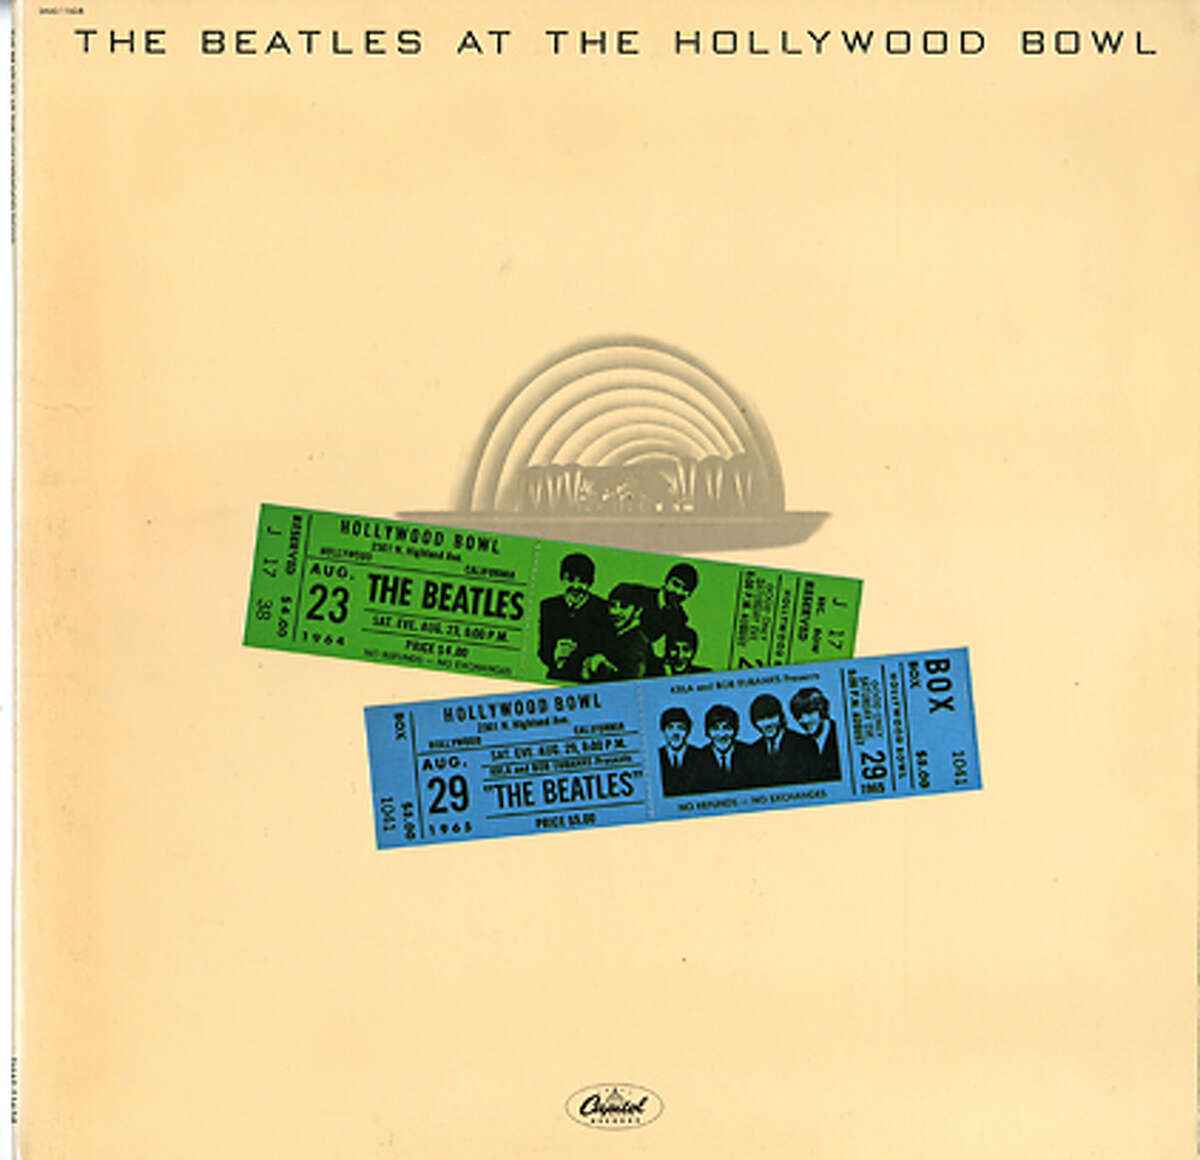 CDS31_07.JPG THE BEATLES: Live At the Hollywood Bowl catagory 1